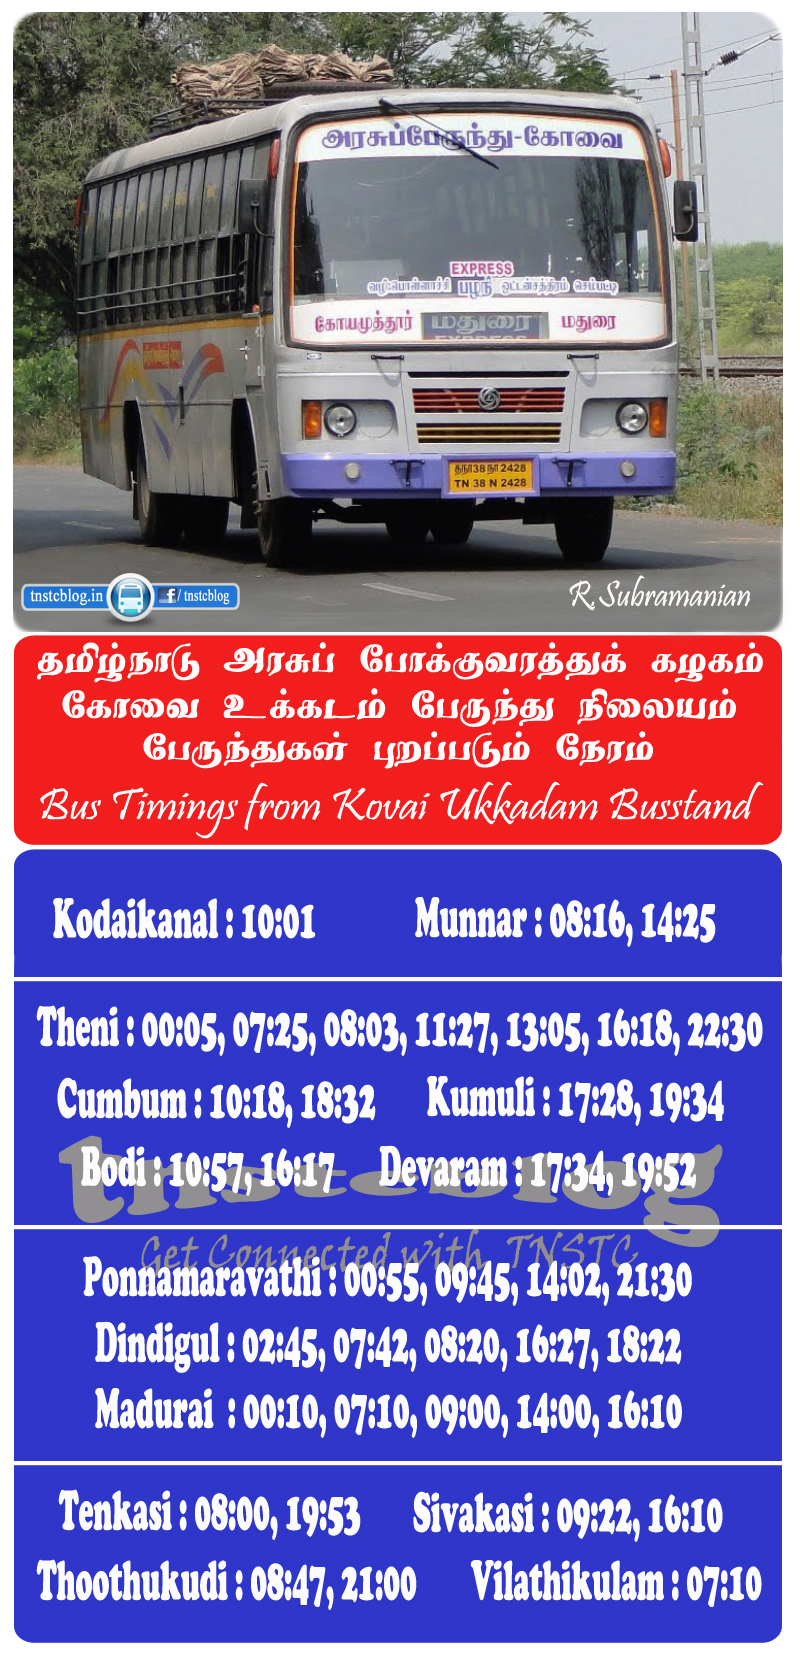 Madurai and south bound buses timings from Kovai Ukkadam Busstand.